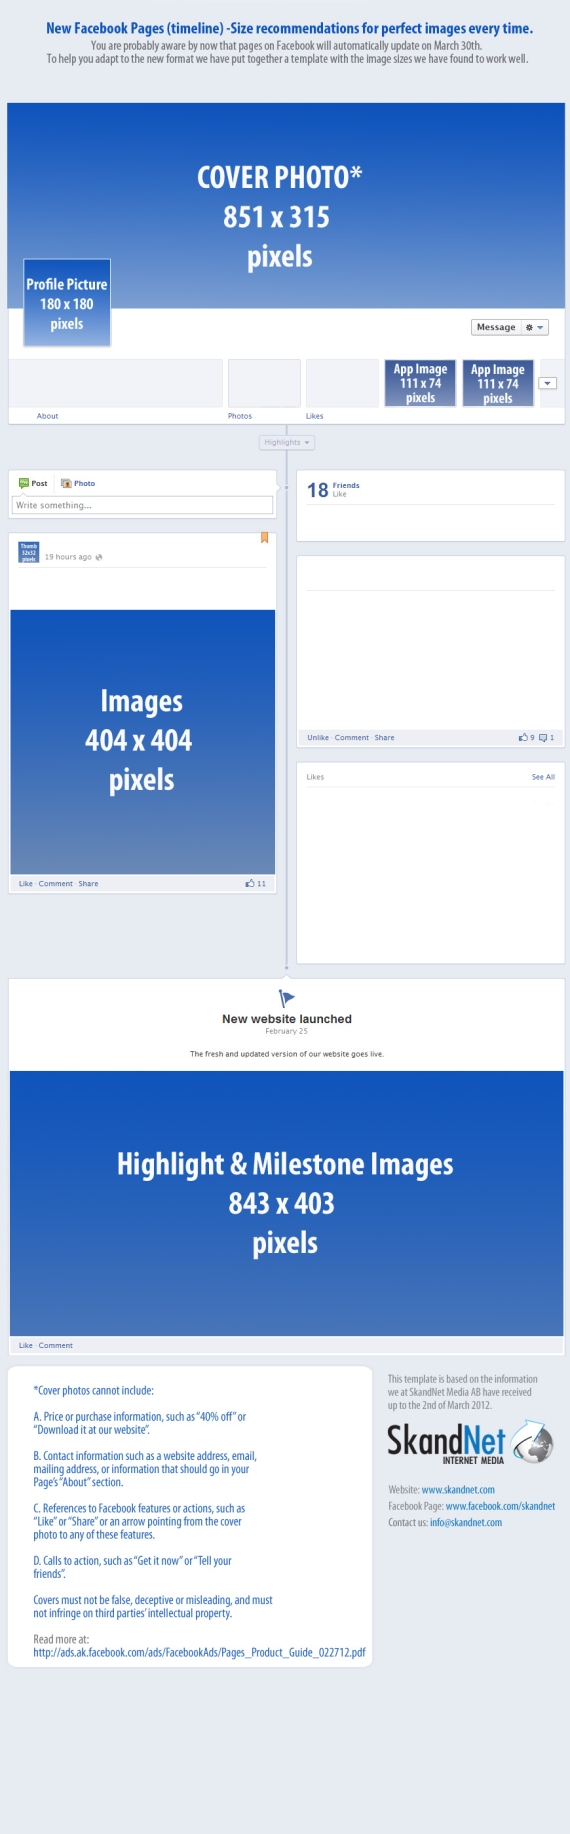 Facebook image sizes wxh cover photo 851 x 315 px profile facebook image sizes wxh cover photo 851 x 315 px profile picture 180 x 180 px app image 111 x 74 px thumbnail 32 x 32 px images within wall thecheapjerseys Image collections